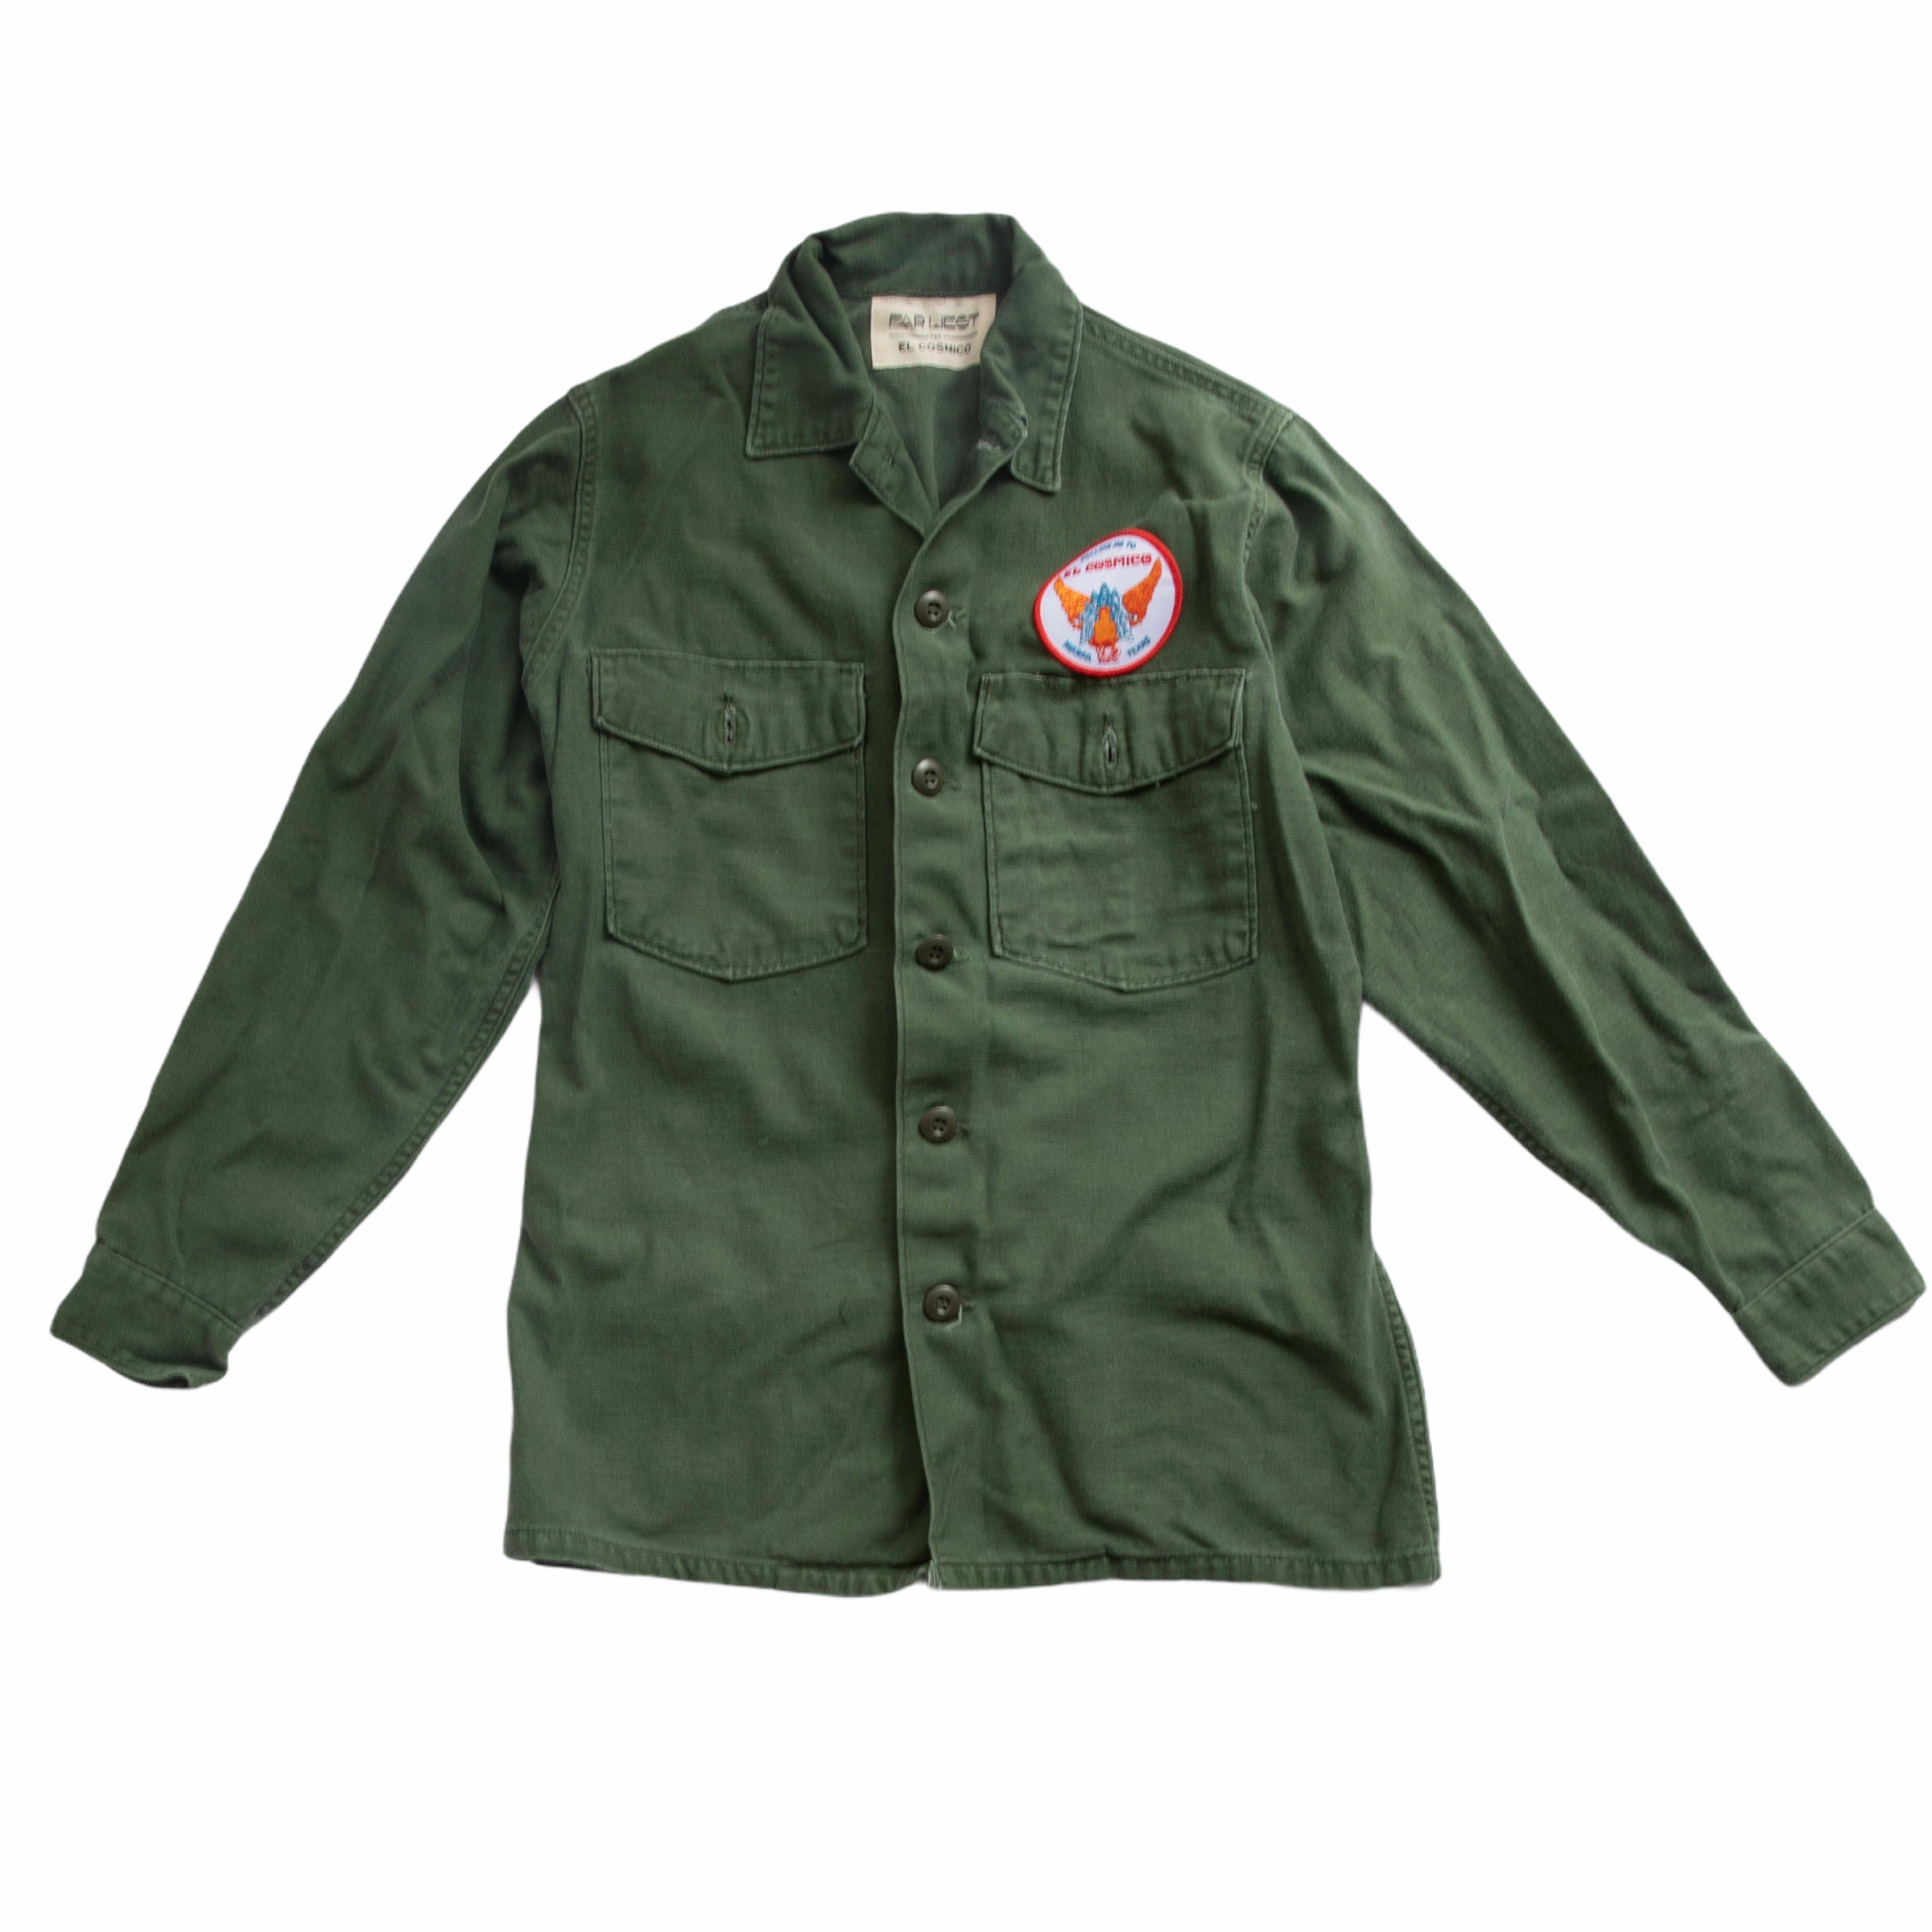 Vintage Army Long Sleeve Work Shirt with Garuda Patch - Medium